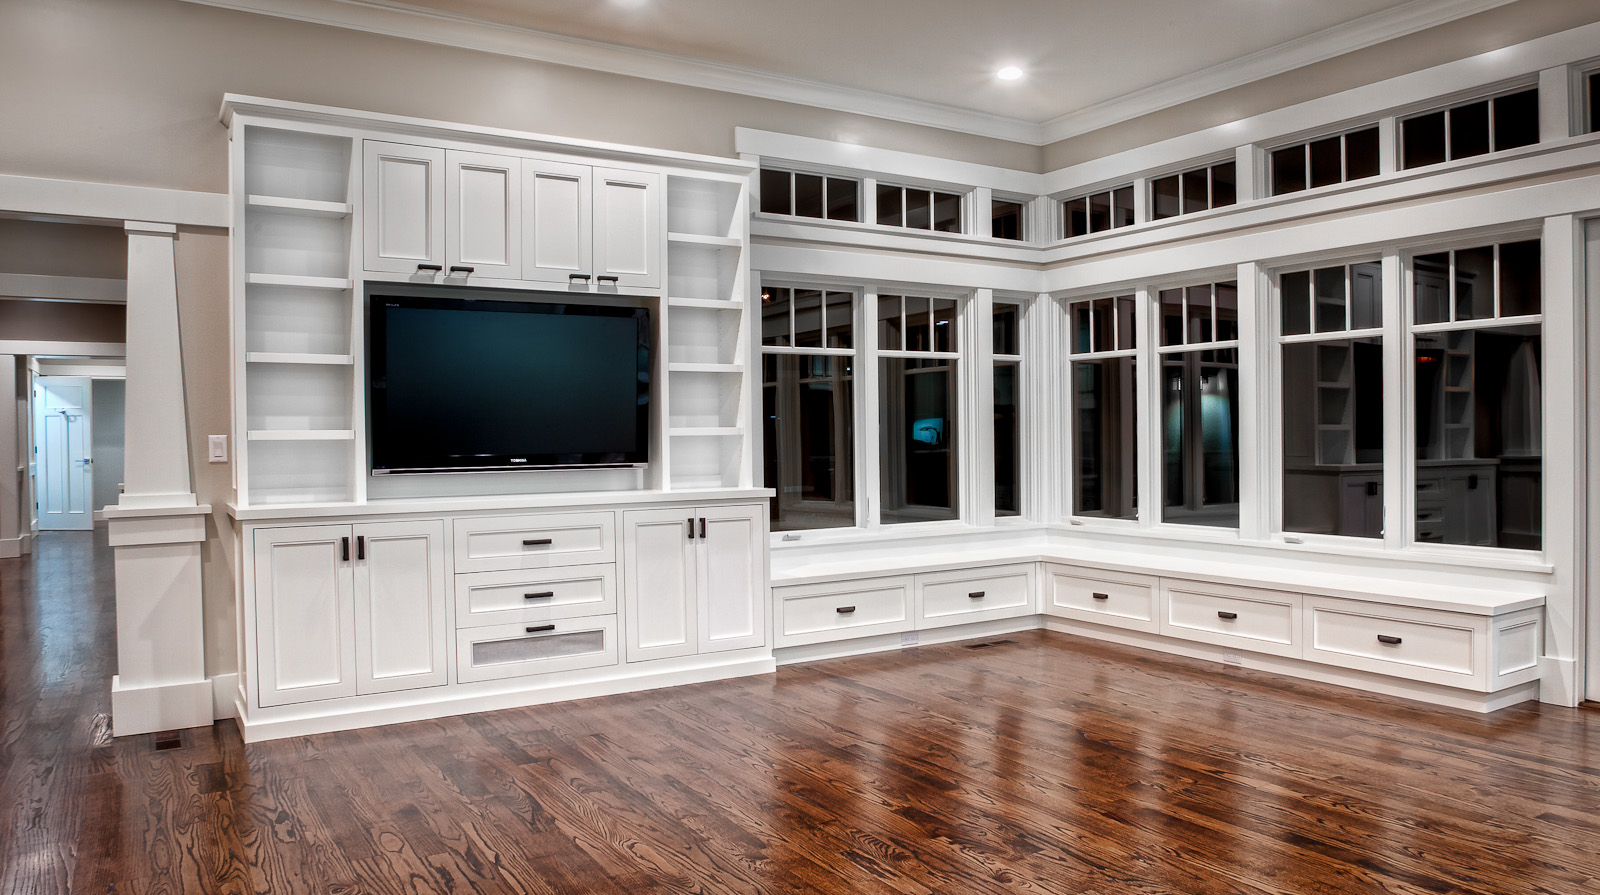 Kitchen Cabinets Houston On Kitchen Custom Cabinets Houston  Cabinet Masters  Houston's Premier